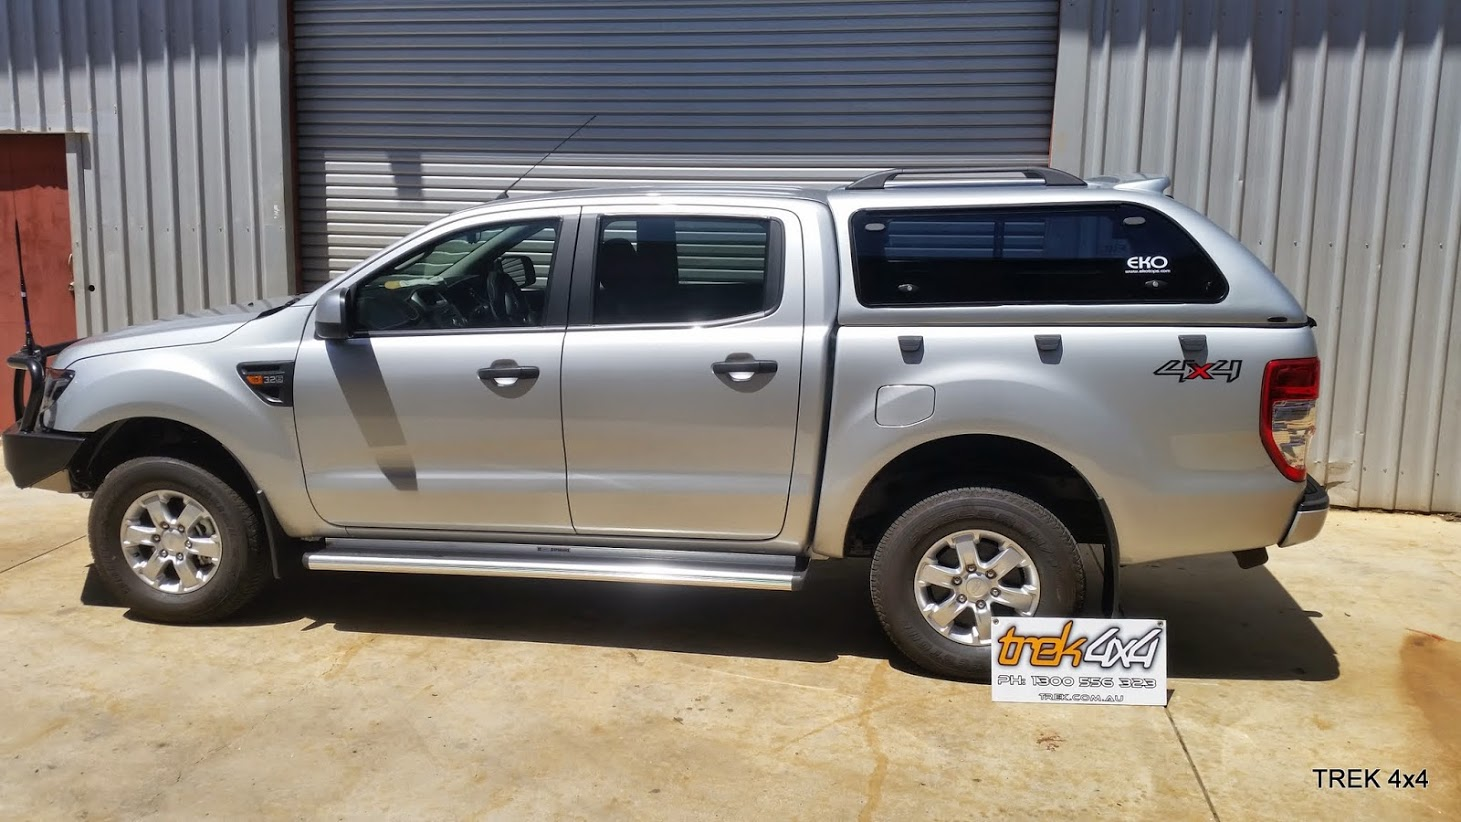 Ford Ranger Canopy Picture ShopEKO